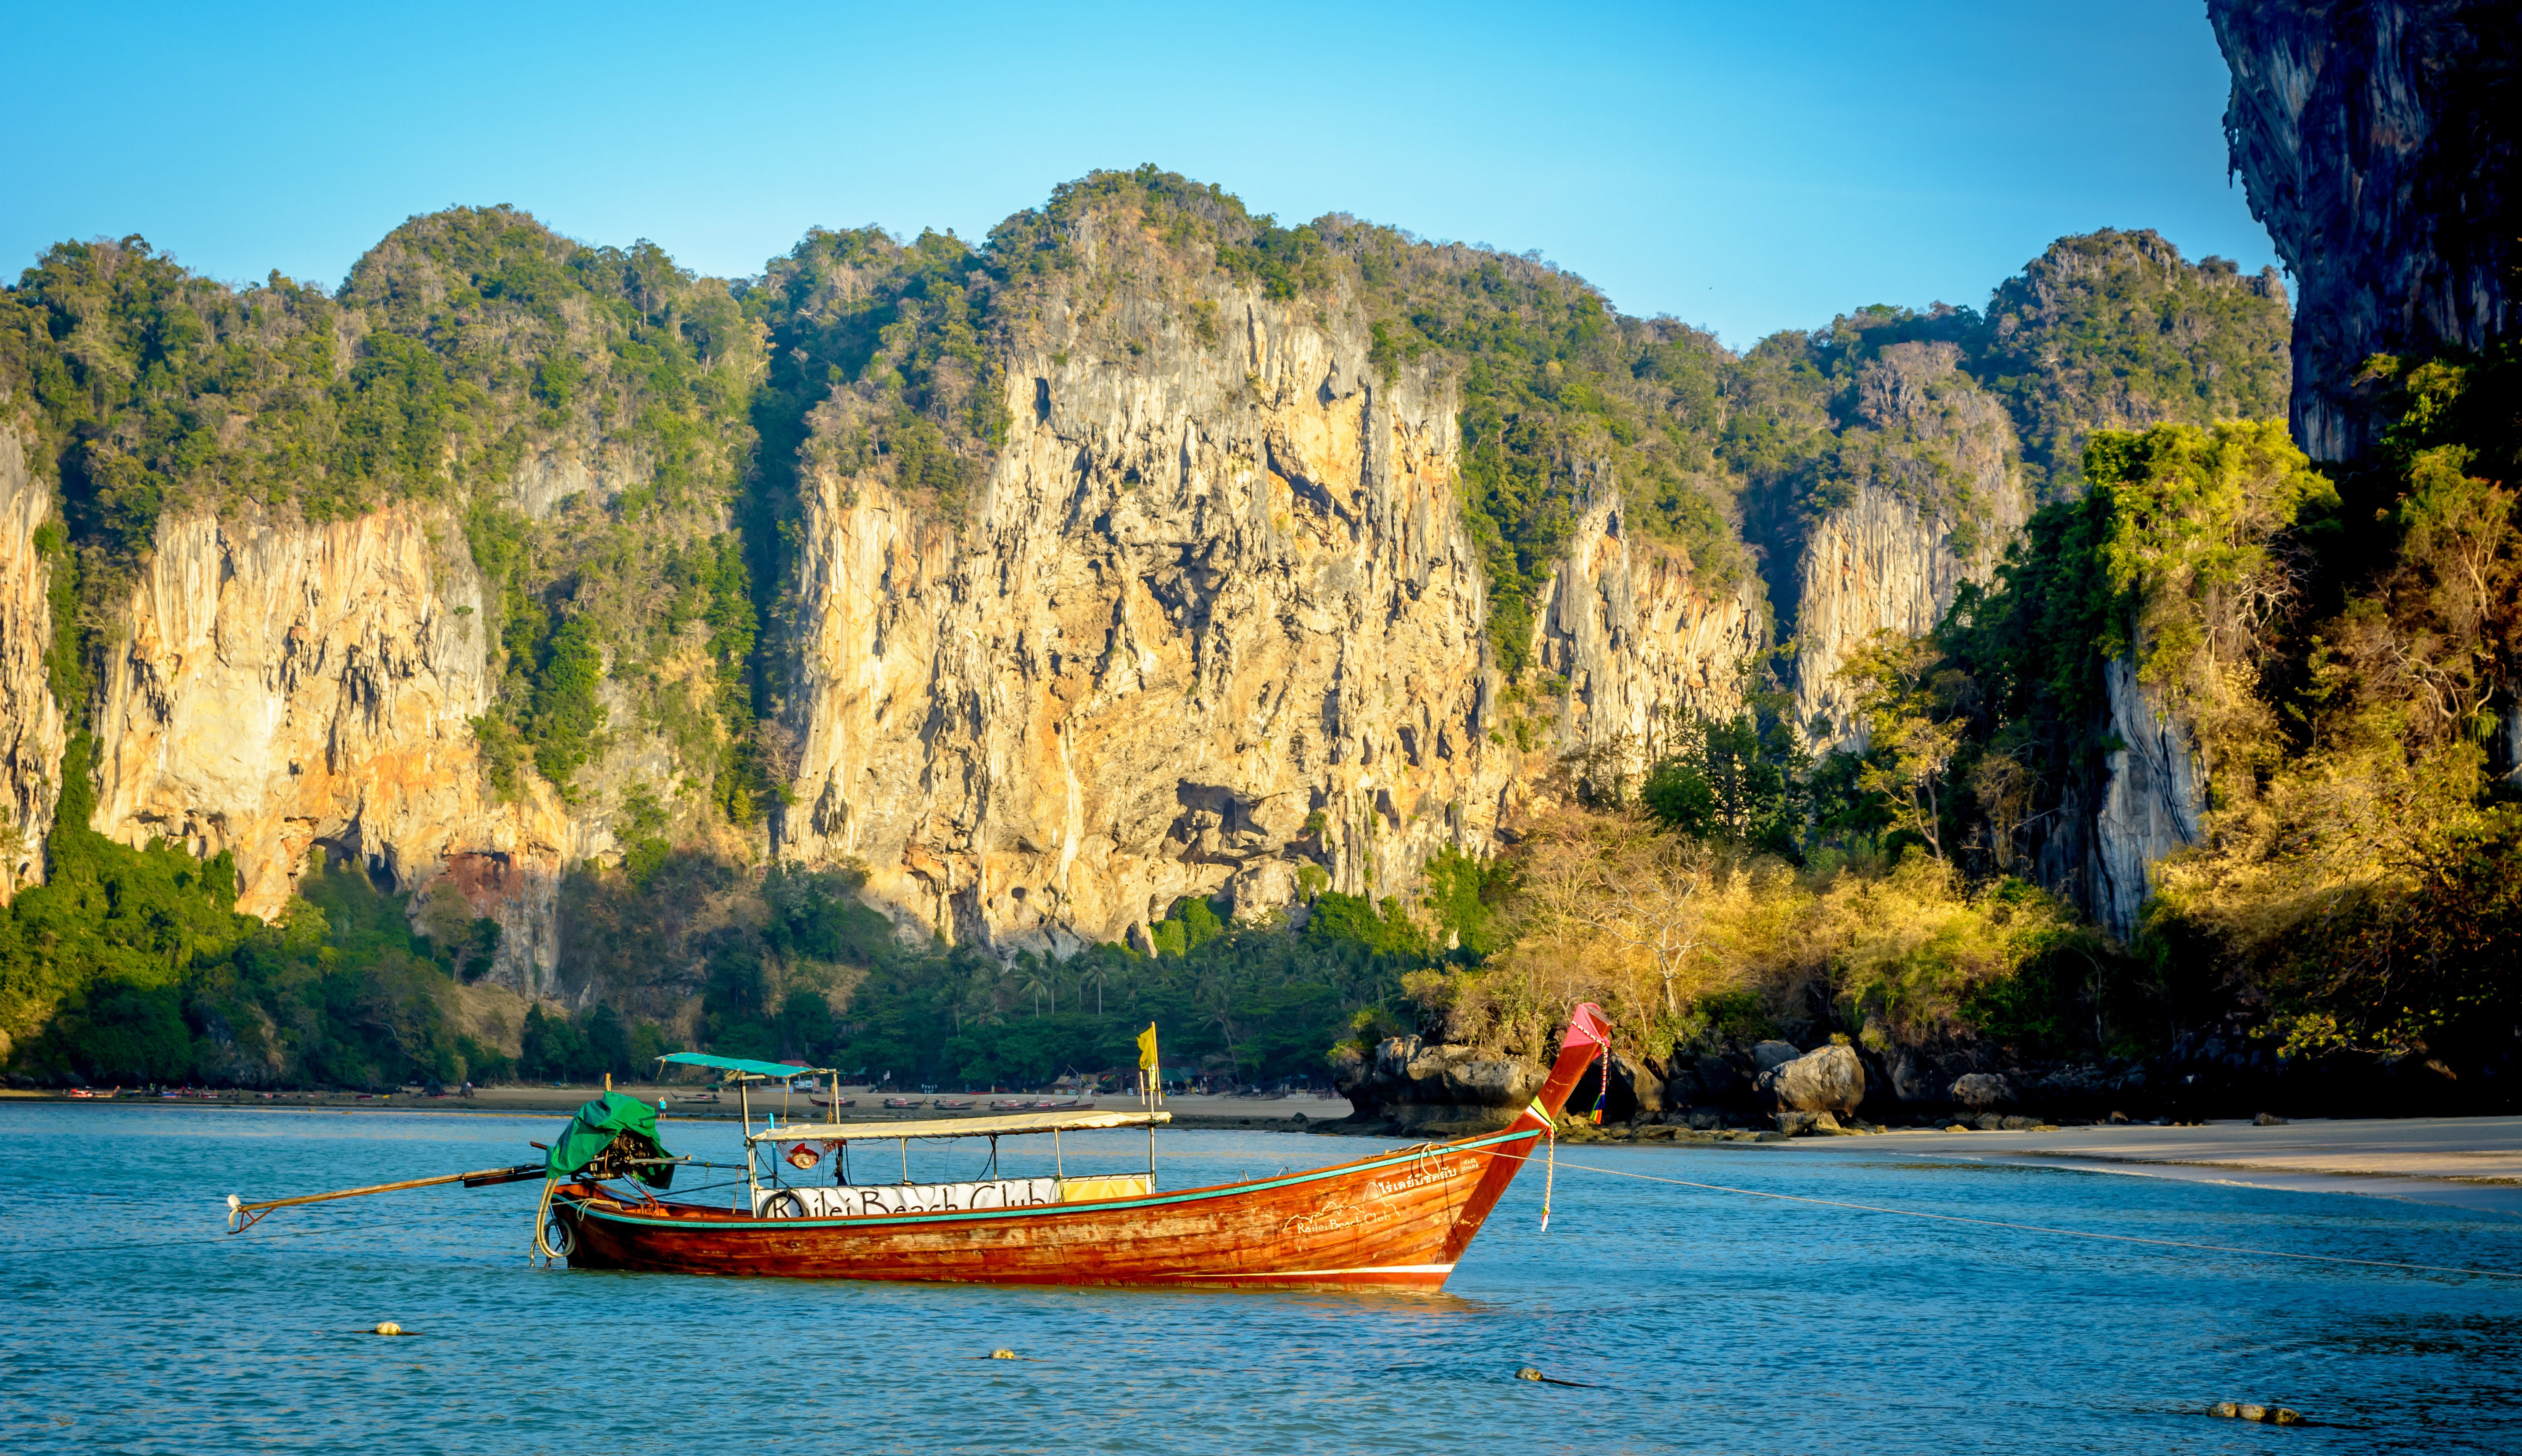 Sailing in the landscape of Thailand on the River image